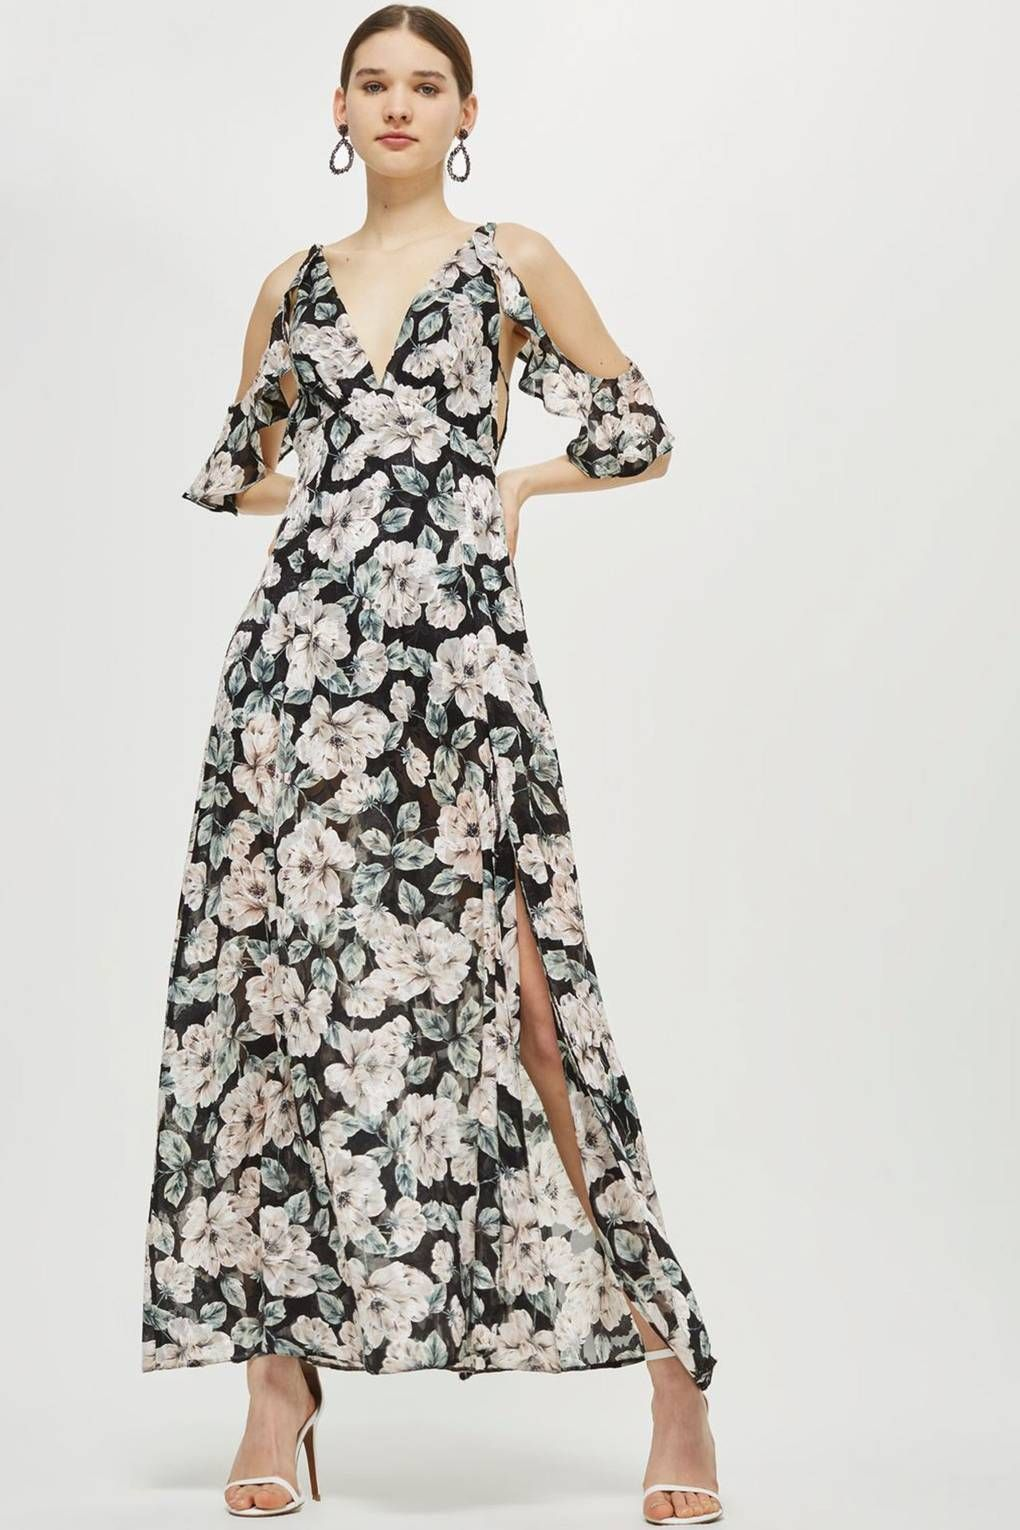 62f3e01a11 37 Dresses to Wear to Every Wedding This Summer in 2019 | Wedding ...